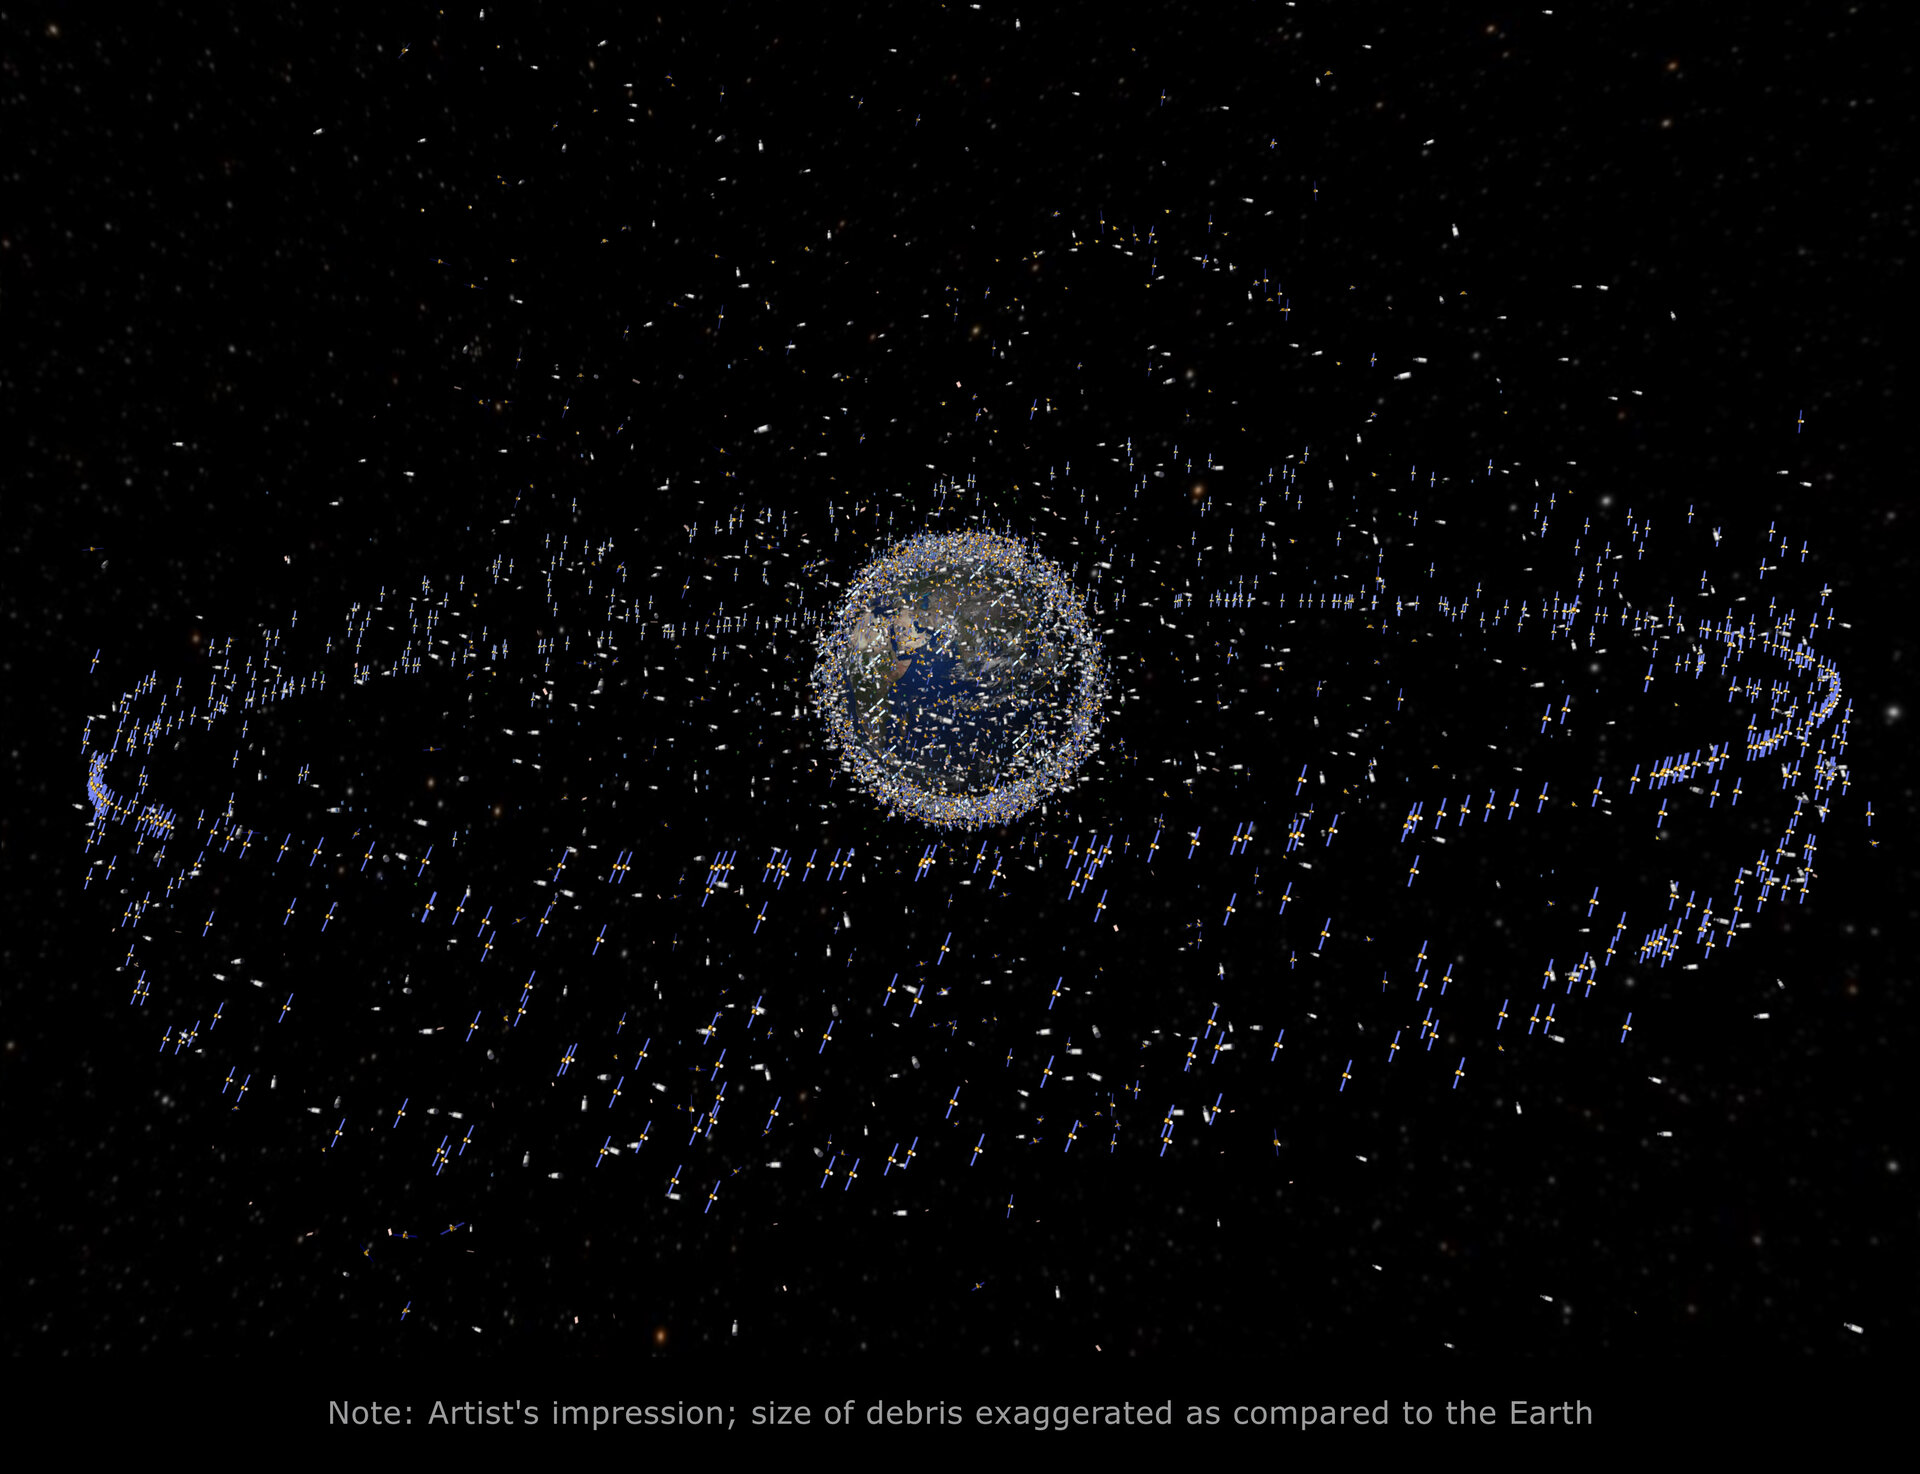 Trackable objects in orbit around Earth